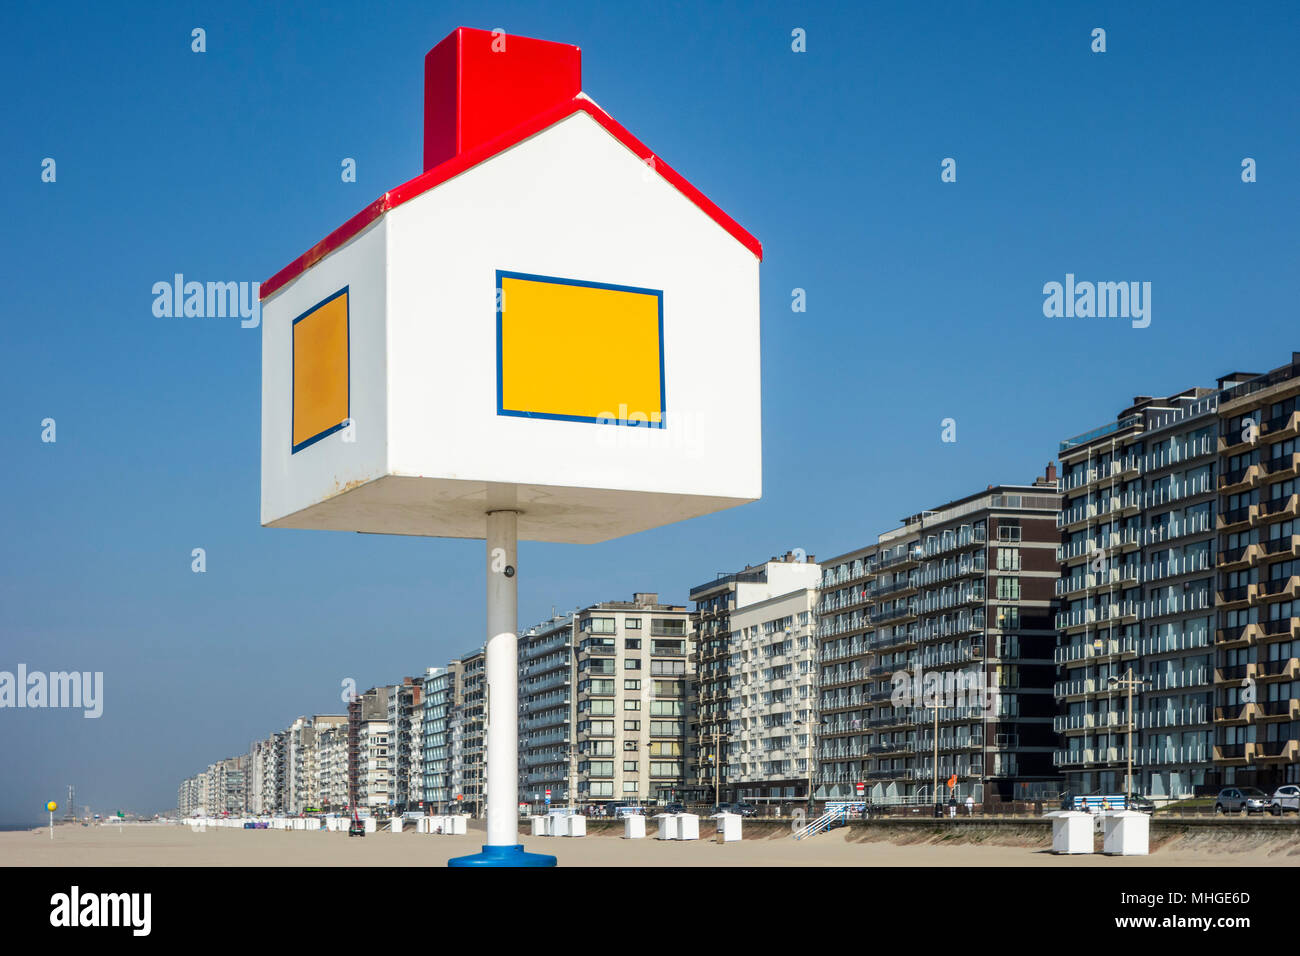 Reference point in the shape of a house for children at the beach and flats / apartment blocks at seaside resort Middelkerke, West Flanders, Belgium - Stock Image